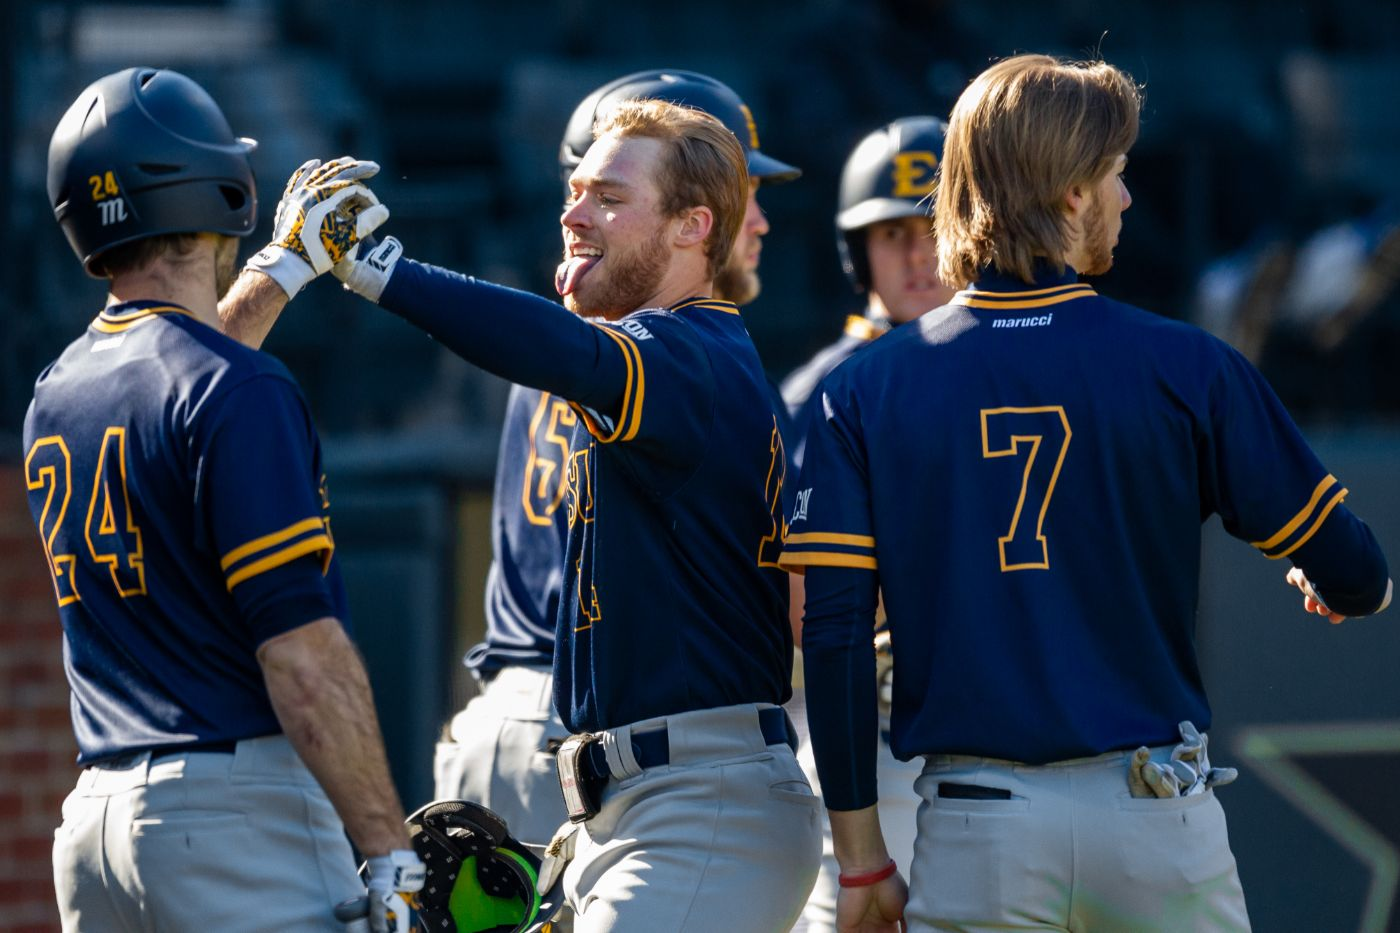 Bucs come from behind to eliminate No. 5 Furman, 7-5